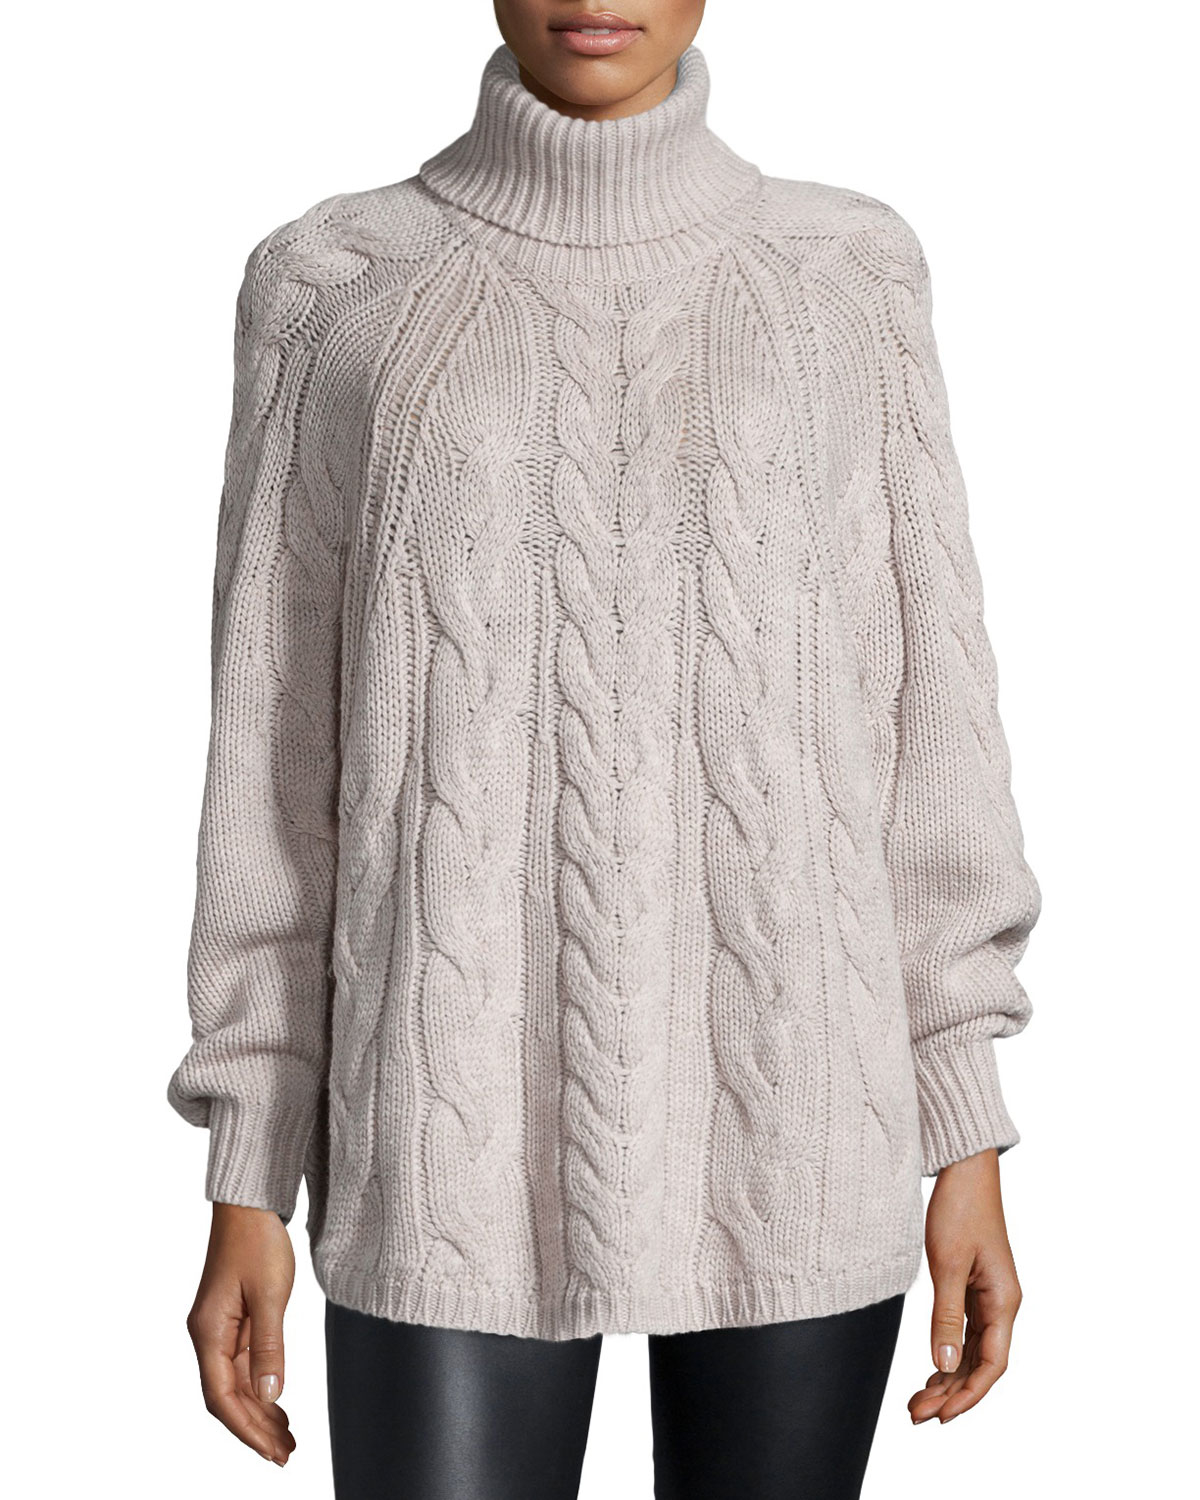 Halston Long-sleeve Cable-knit Sweater in Gray | Lyst